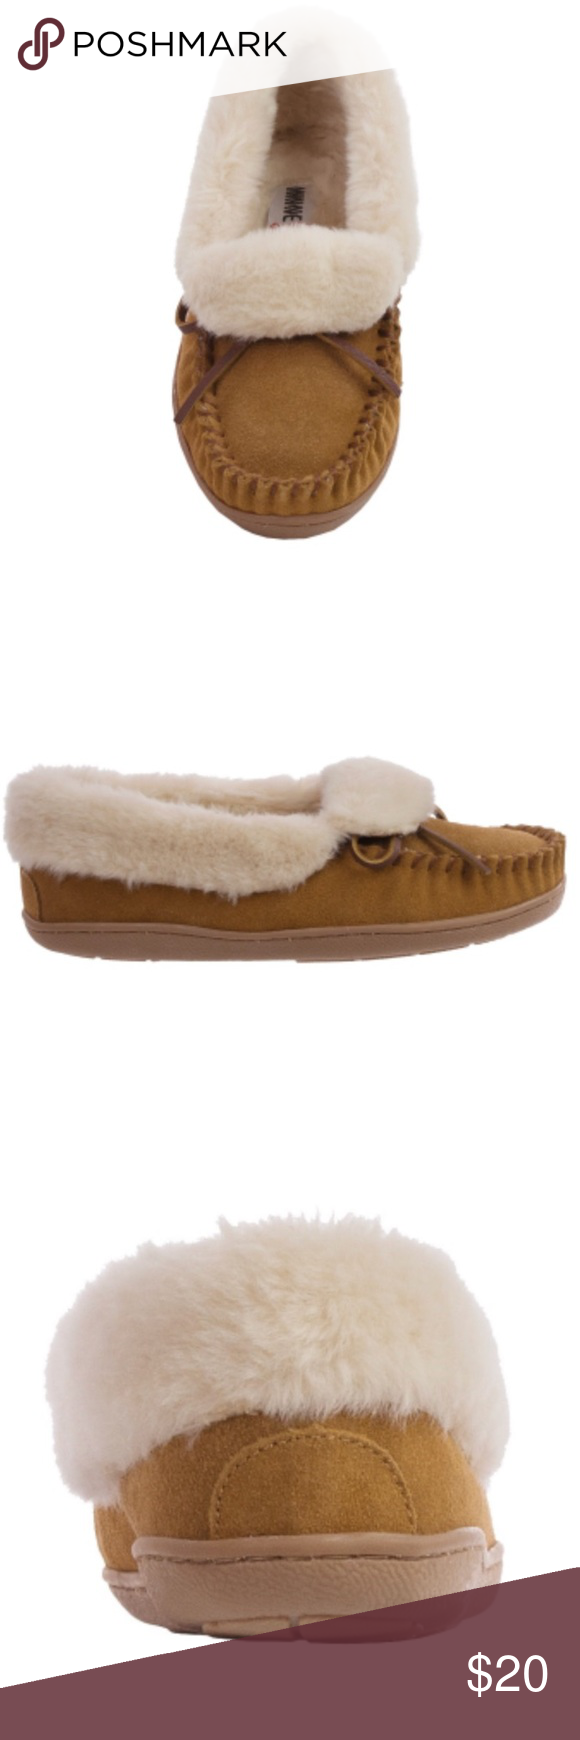 e0b5cdab90e Minnetonka Trina folded faux fur trapper Great condition. Comes with  original box. Minnetonka Shoes Moccasins